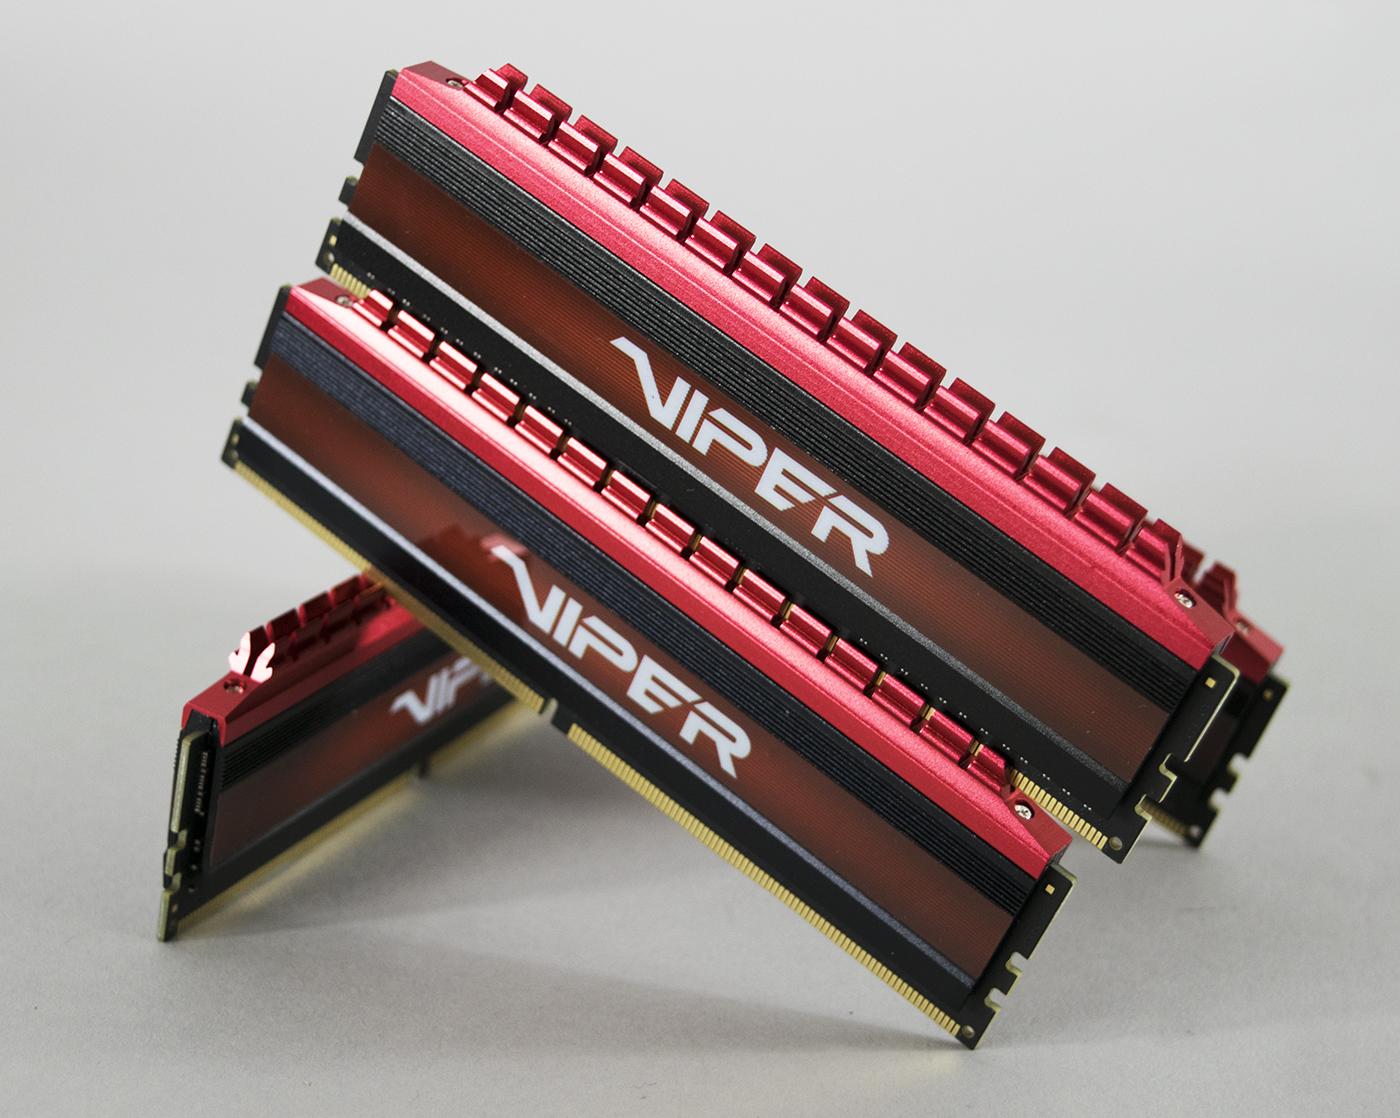 Patriot Viper 4 DDR4-2400 16GB Memory Review